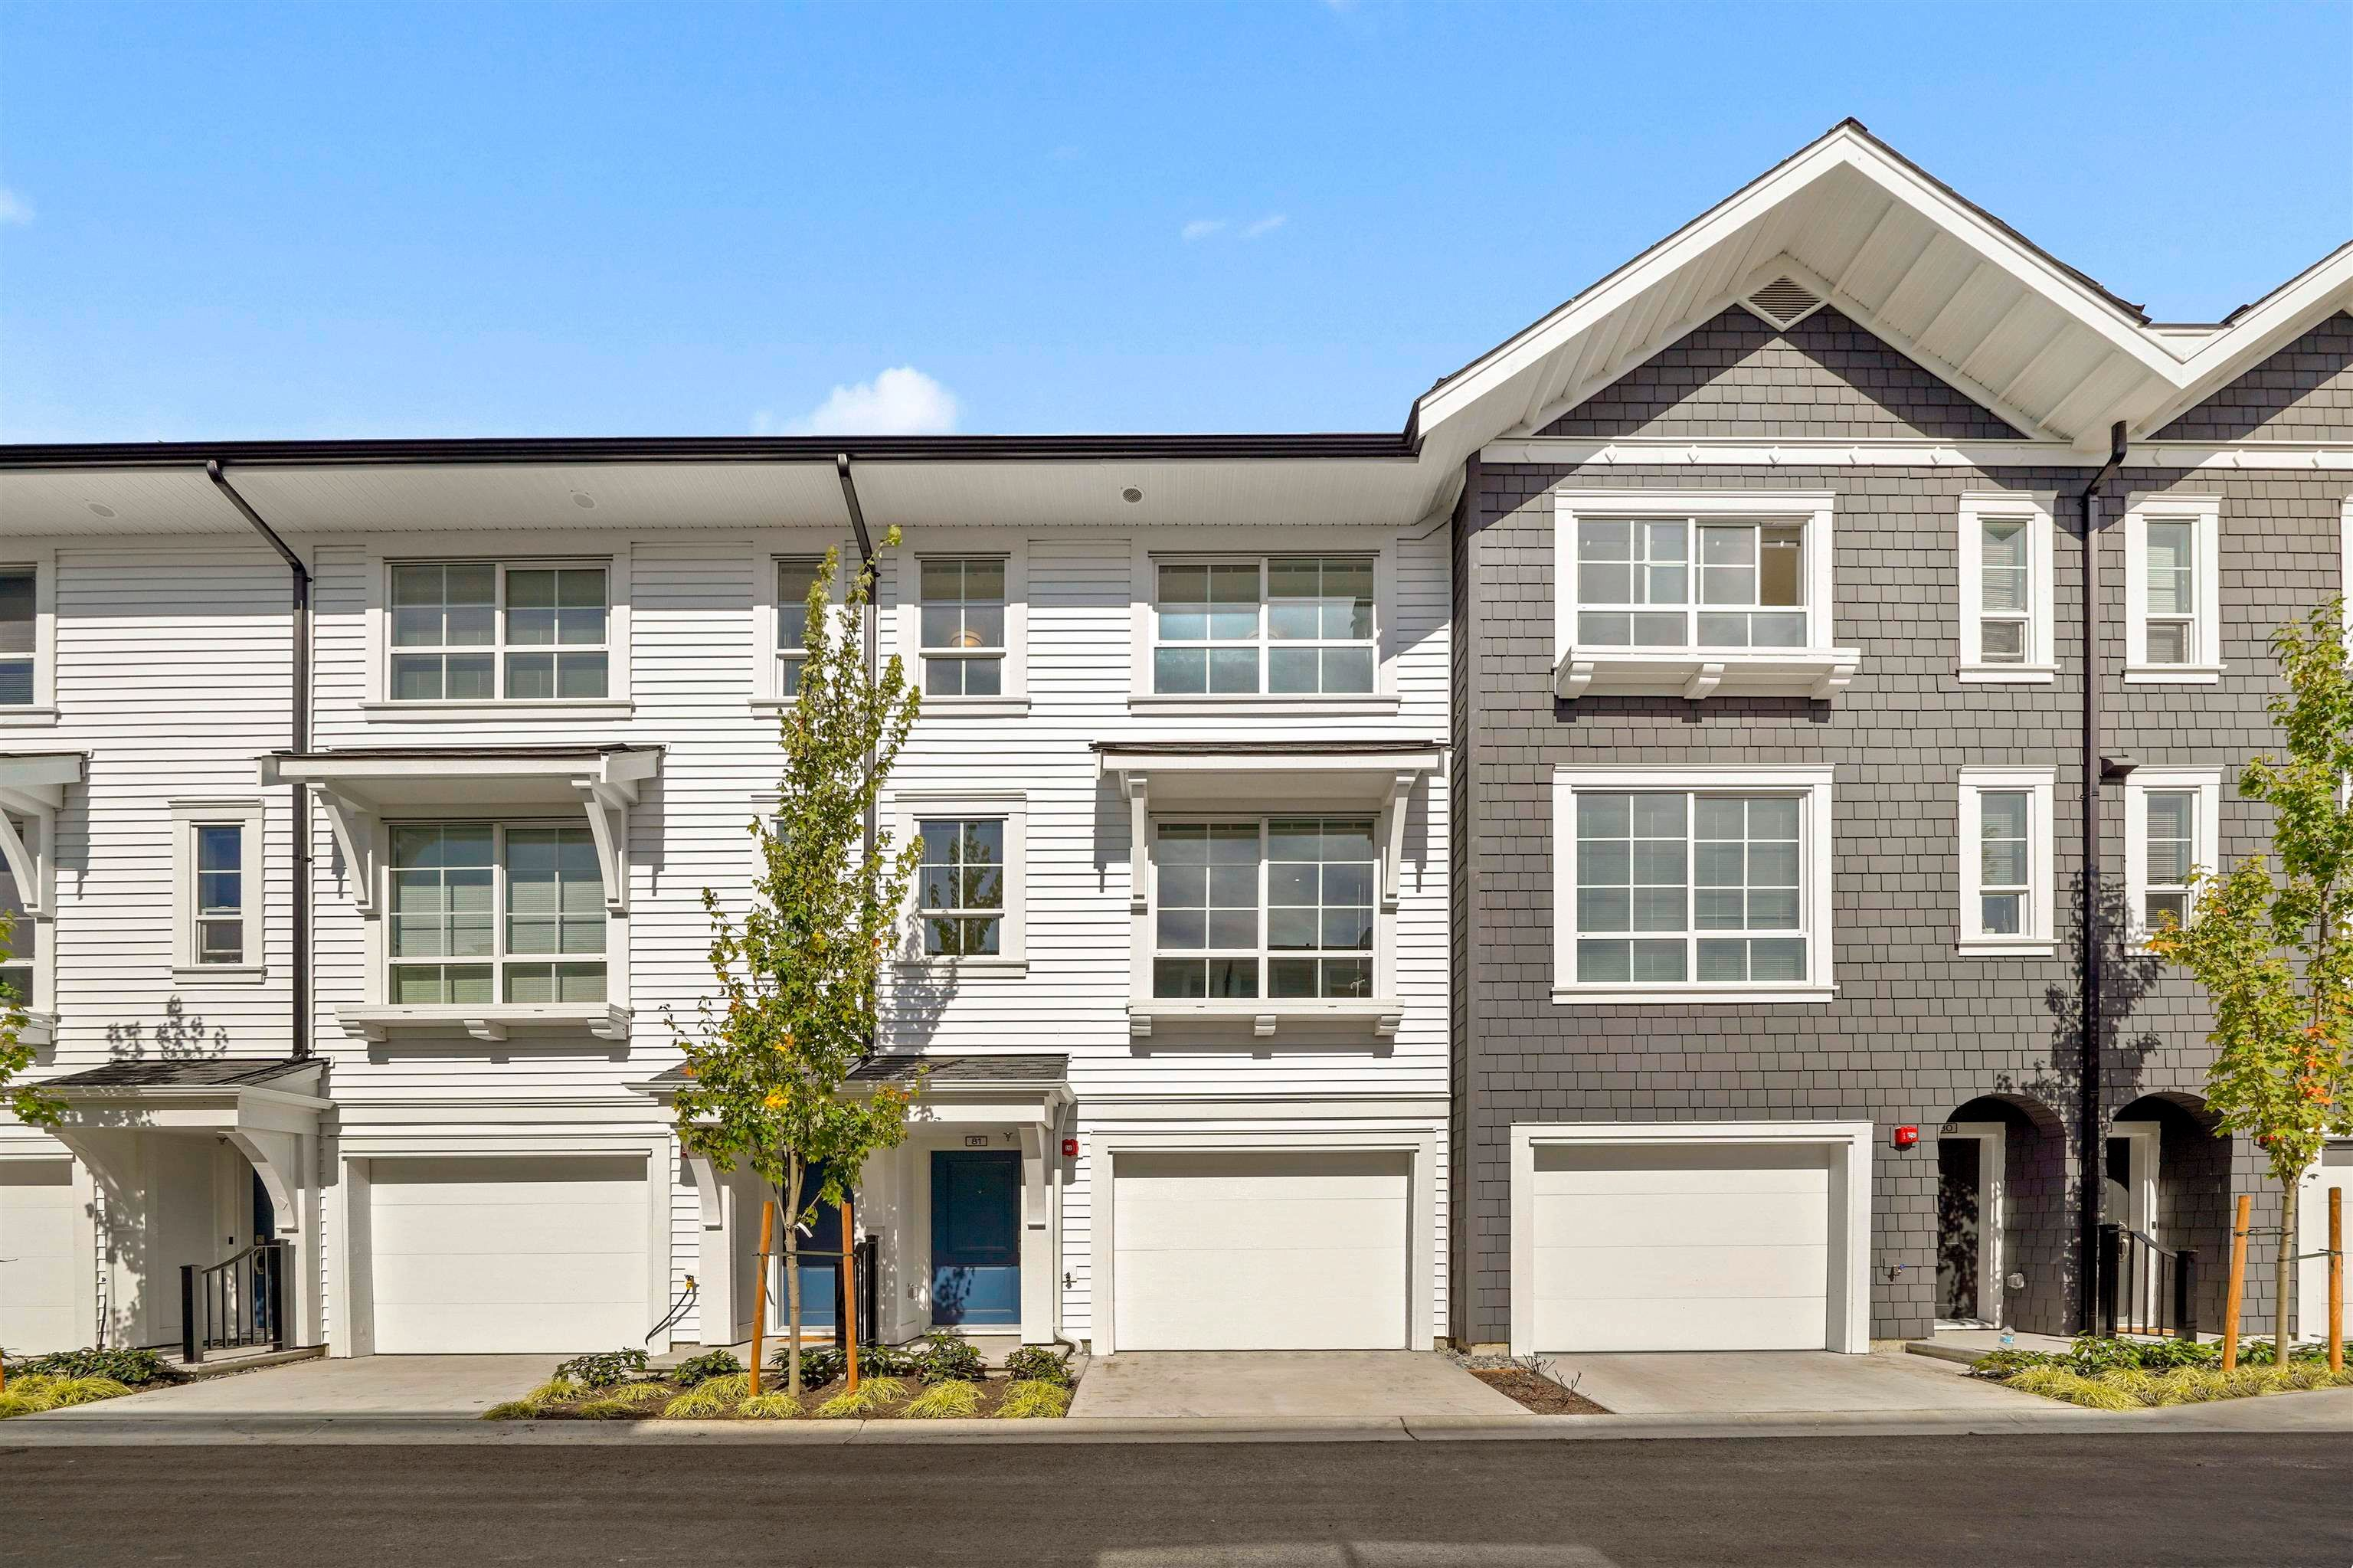 """Main Photo: 81 19696 HAMMOND Road in Pitt Meadows: Central Meadows Townhouse for sale in """"Bonson Mosaic"""" : MLS®# R2619754"""